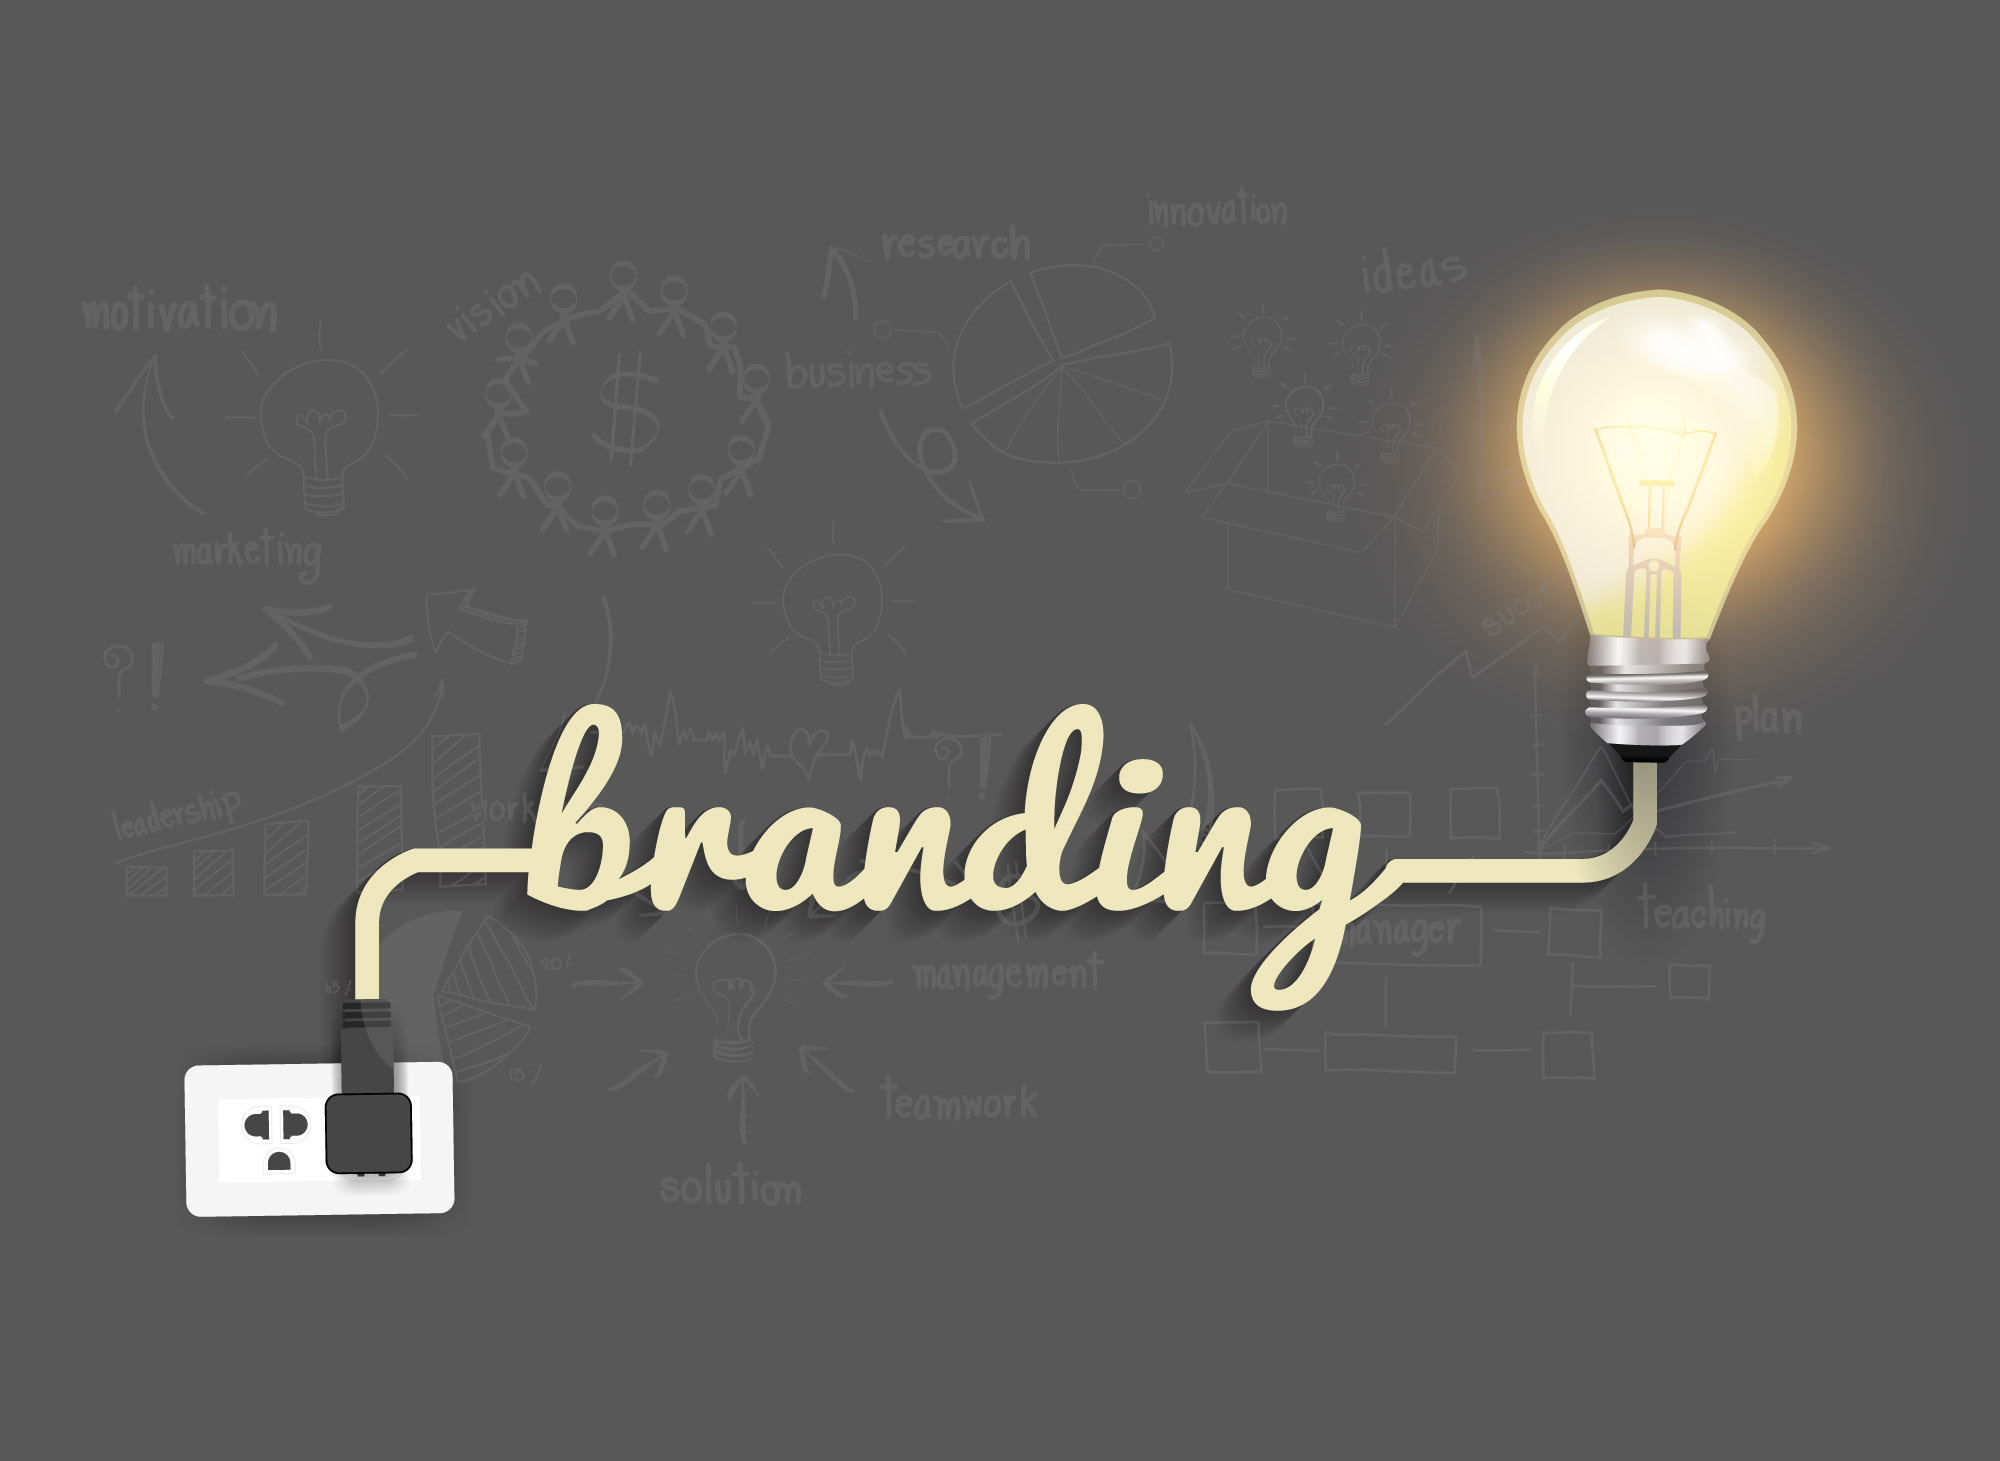 Branding your association for the future